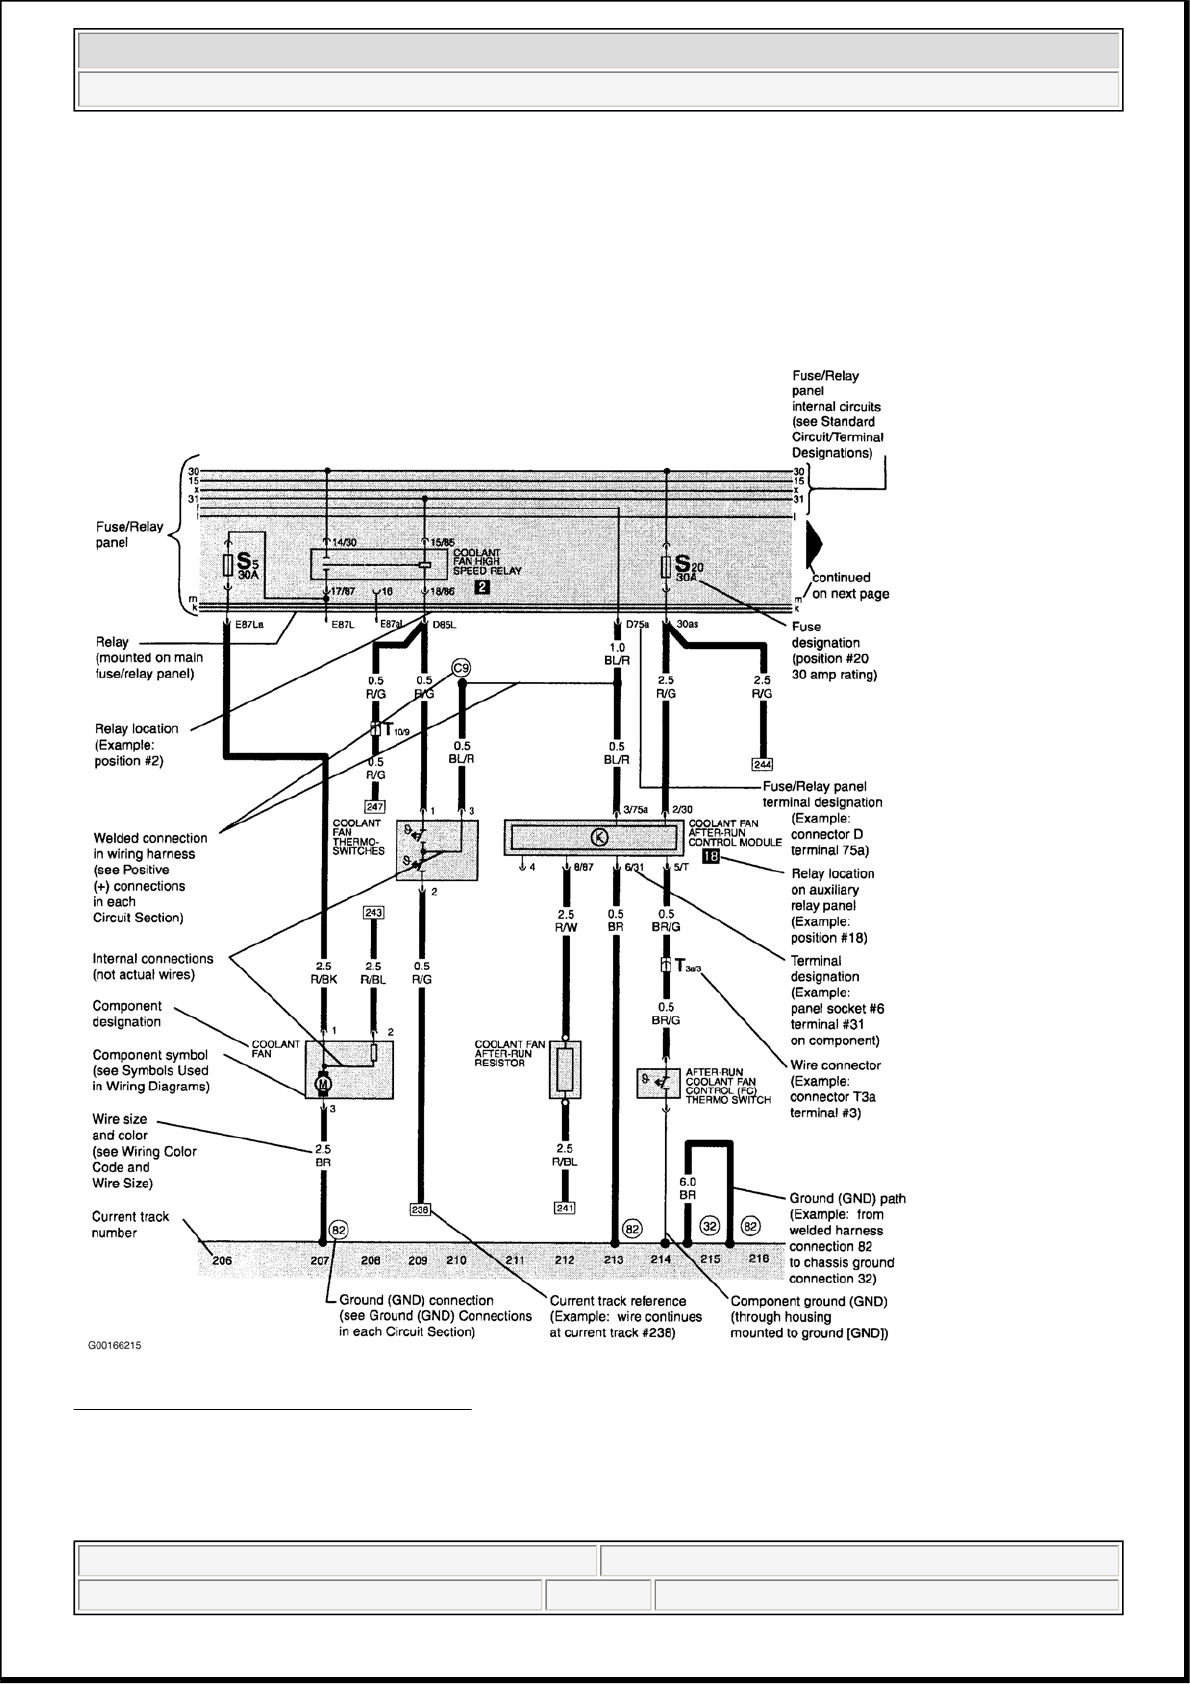 92 Audi S4 Engine Diagram | Wiring Schematic Diagram  Audi S Engine Diagram on wildfire diagram, dual fuel tank plumbing diagram, 2007 audi s4 suspension diagram, 93 accord stereo wire diagram,